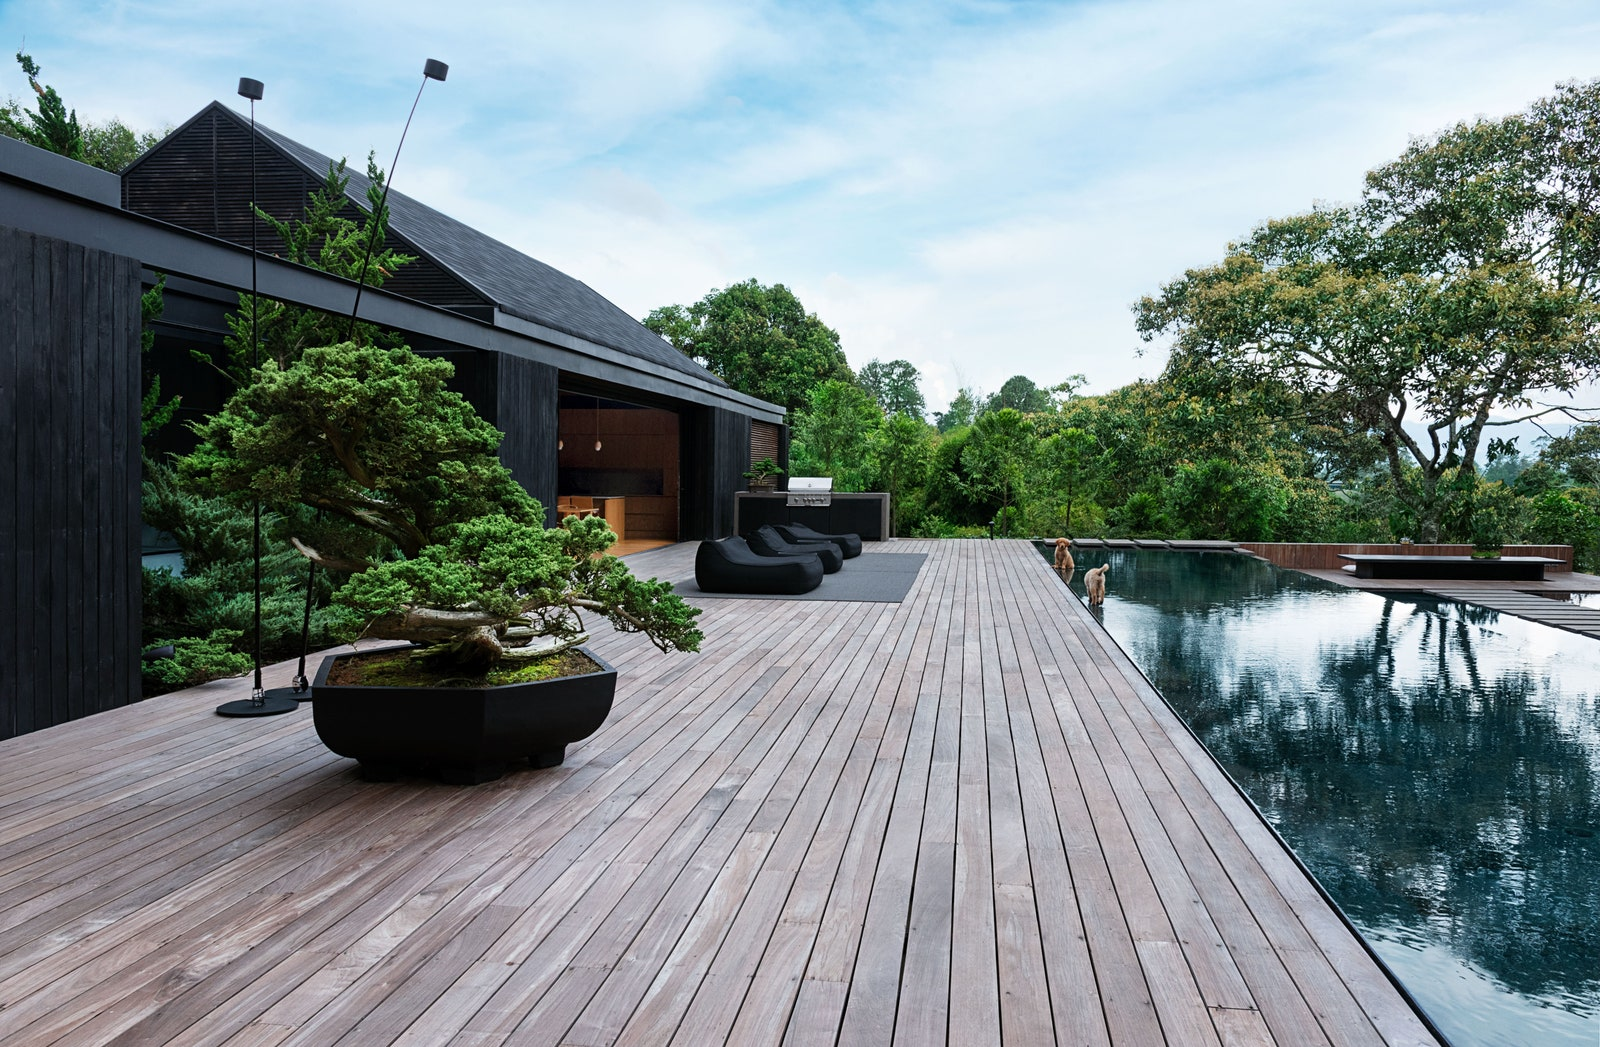 Inside J Balvin's Country Retreat: Japanese Minimalism